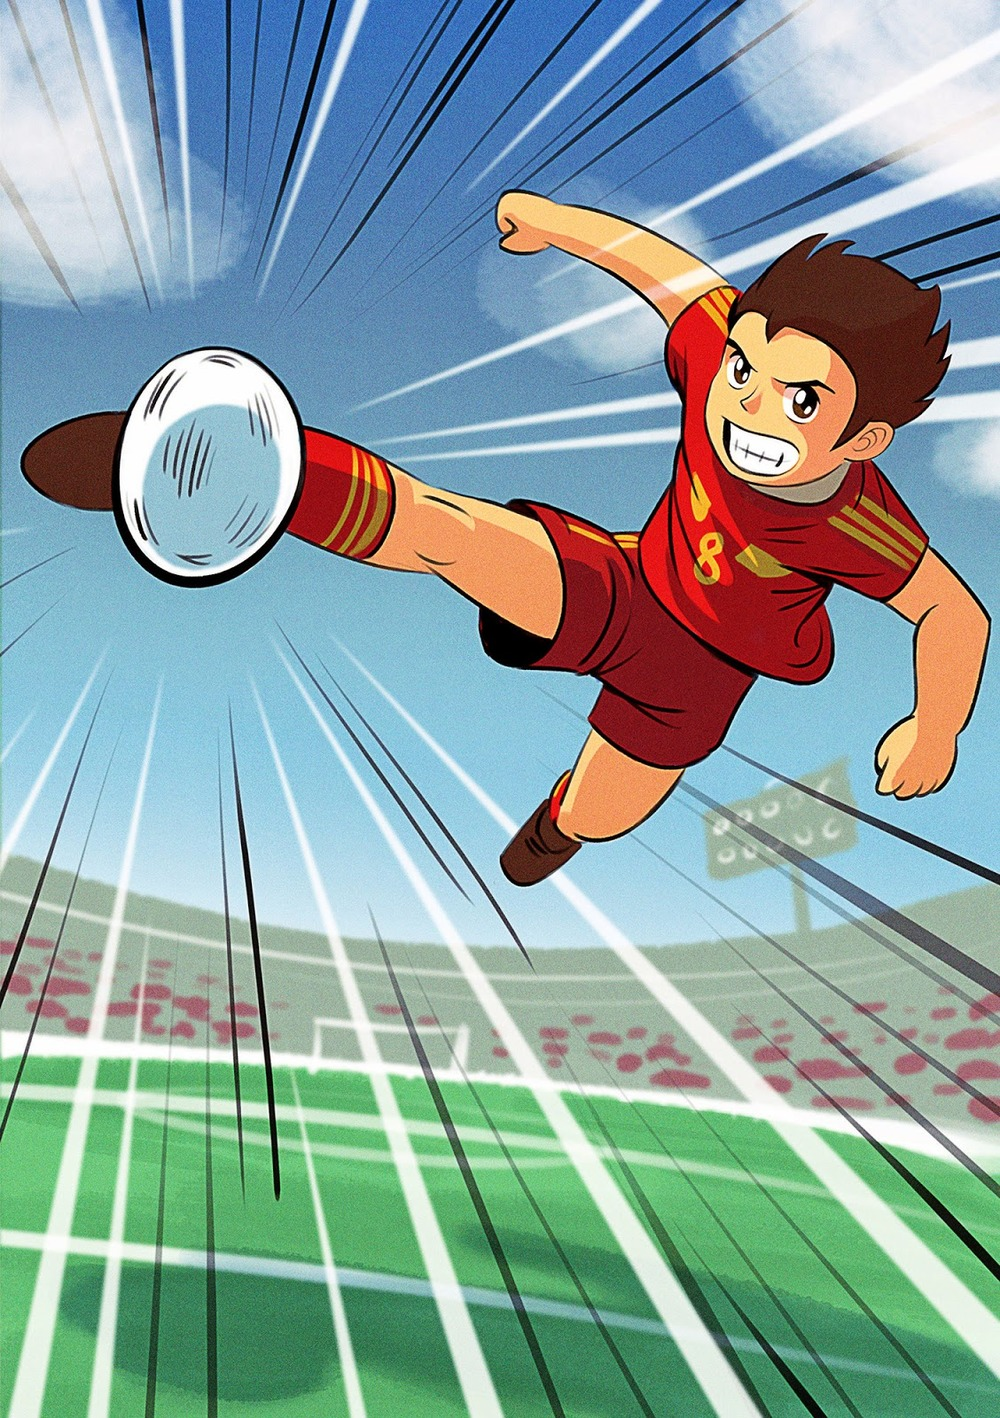 fifa_2014_kids_2characters_action_spain_small.jpg